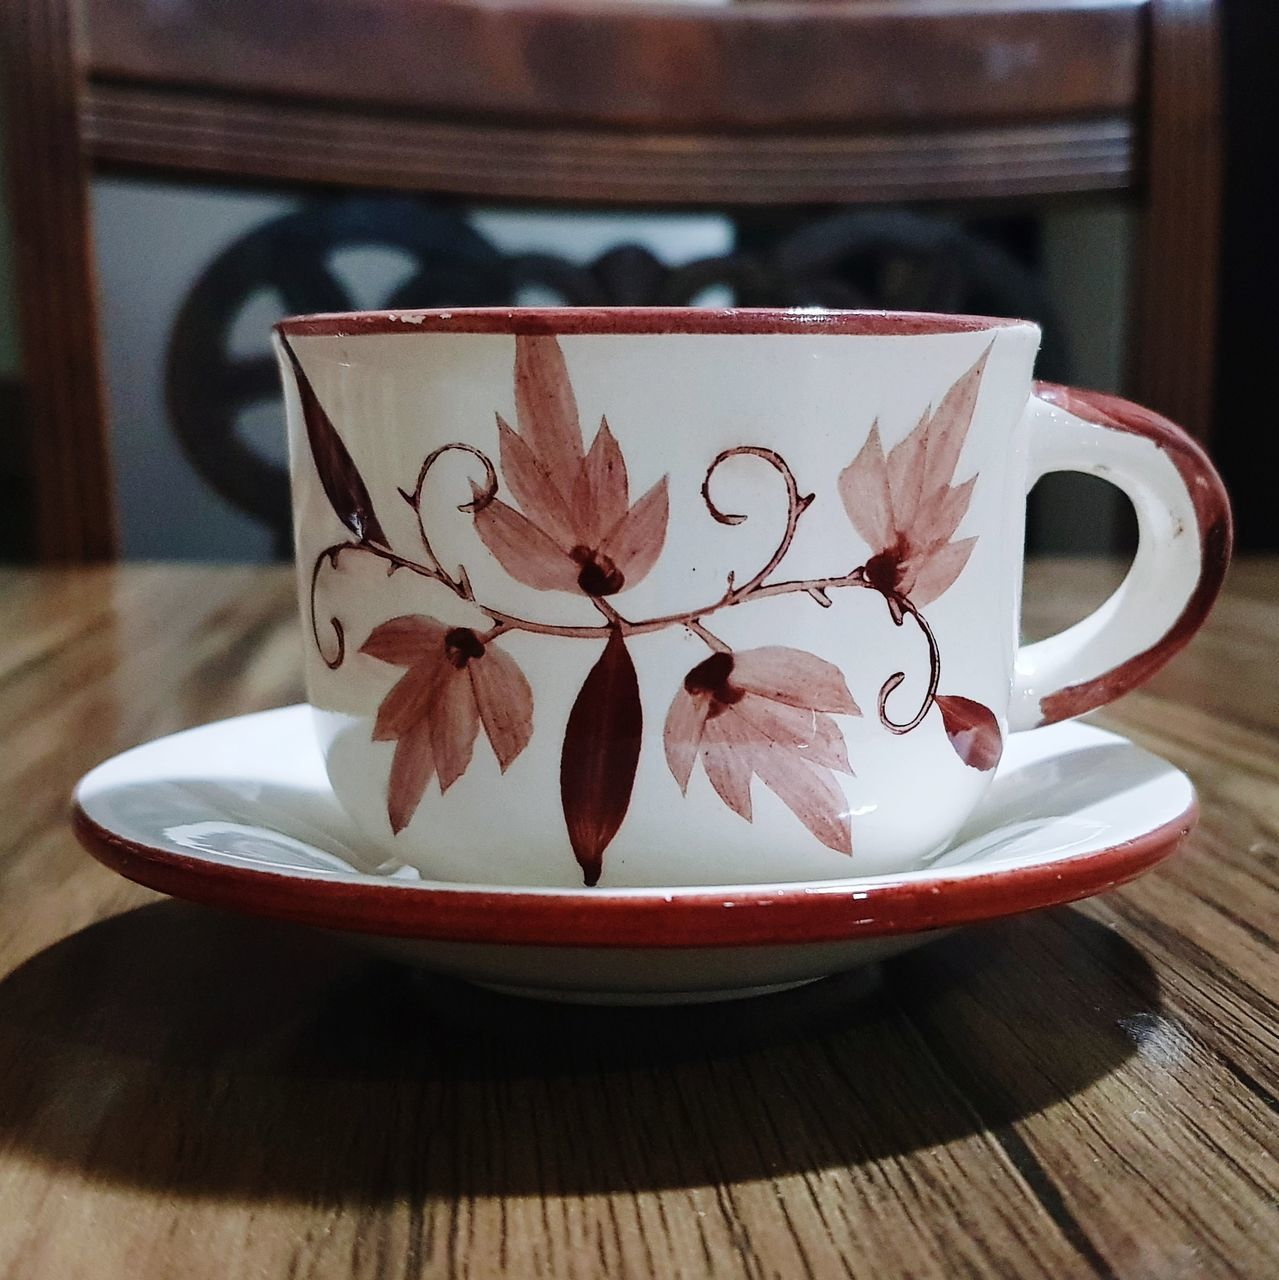 CLOSE-UP OF COFFEE CUP ON TABLE WITH SPOON